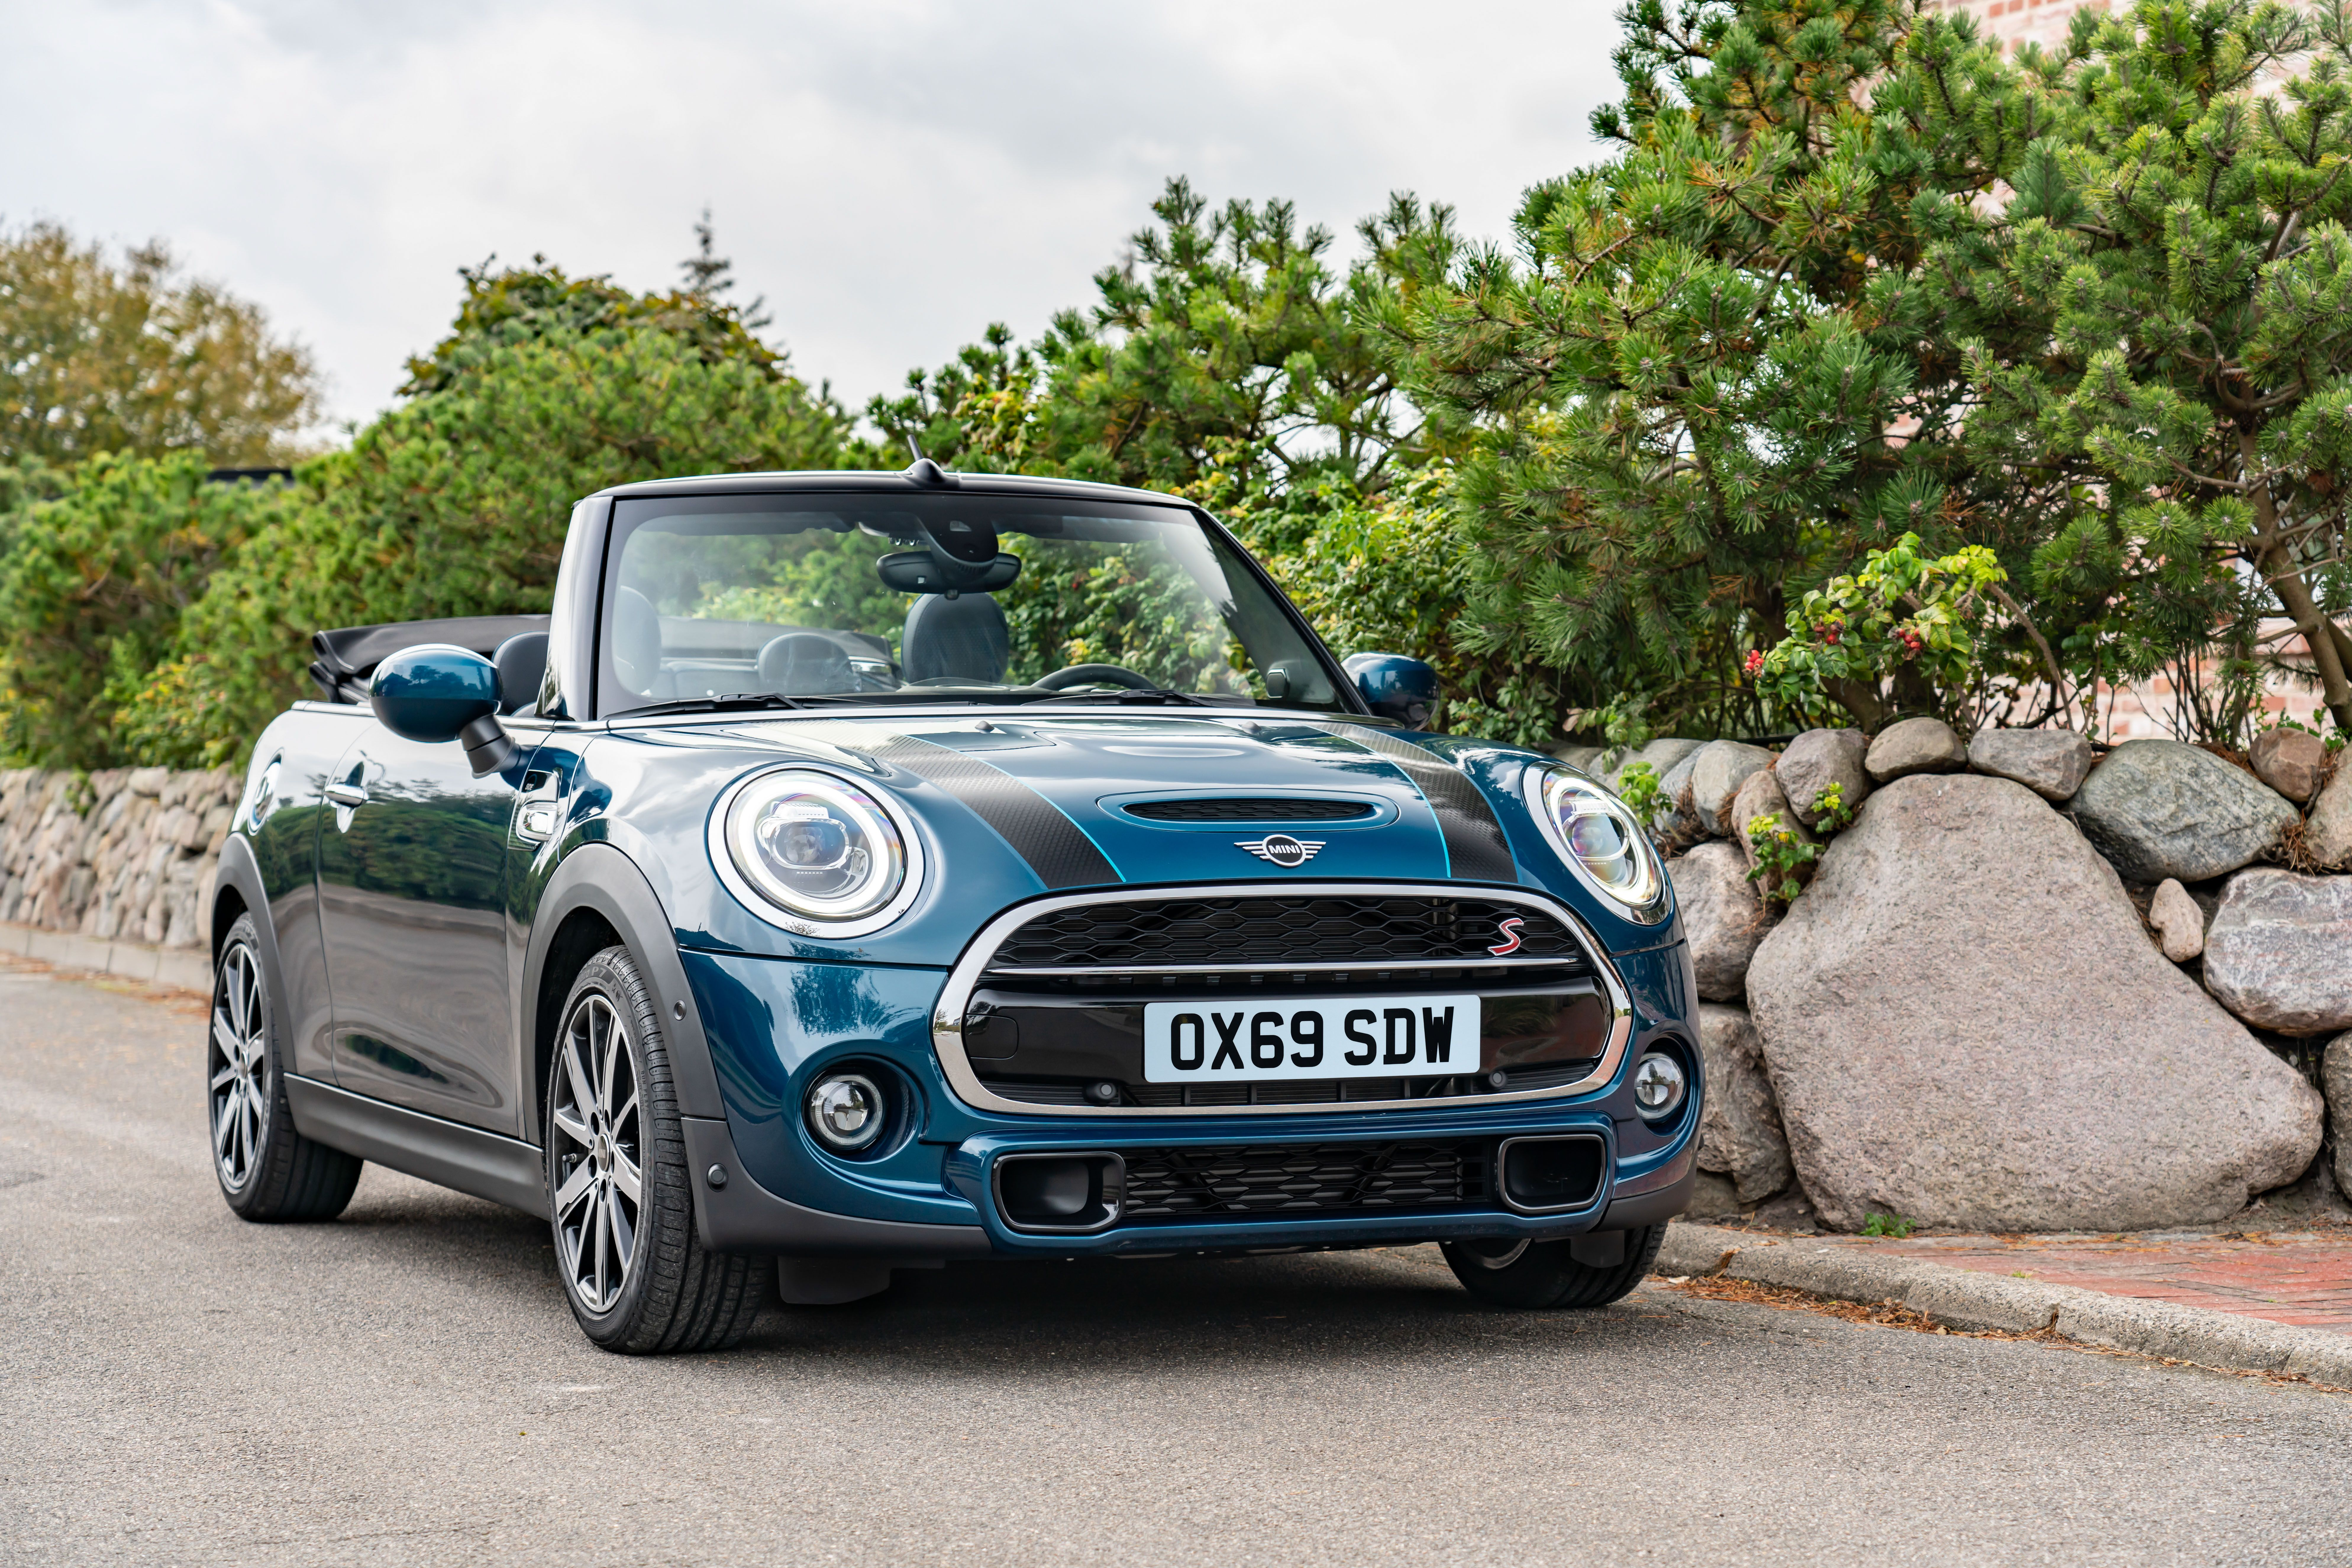 2021 Mini Cooper Convertible S Specs and Review